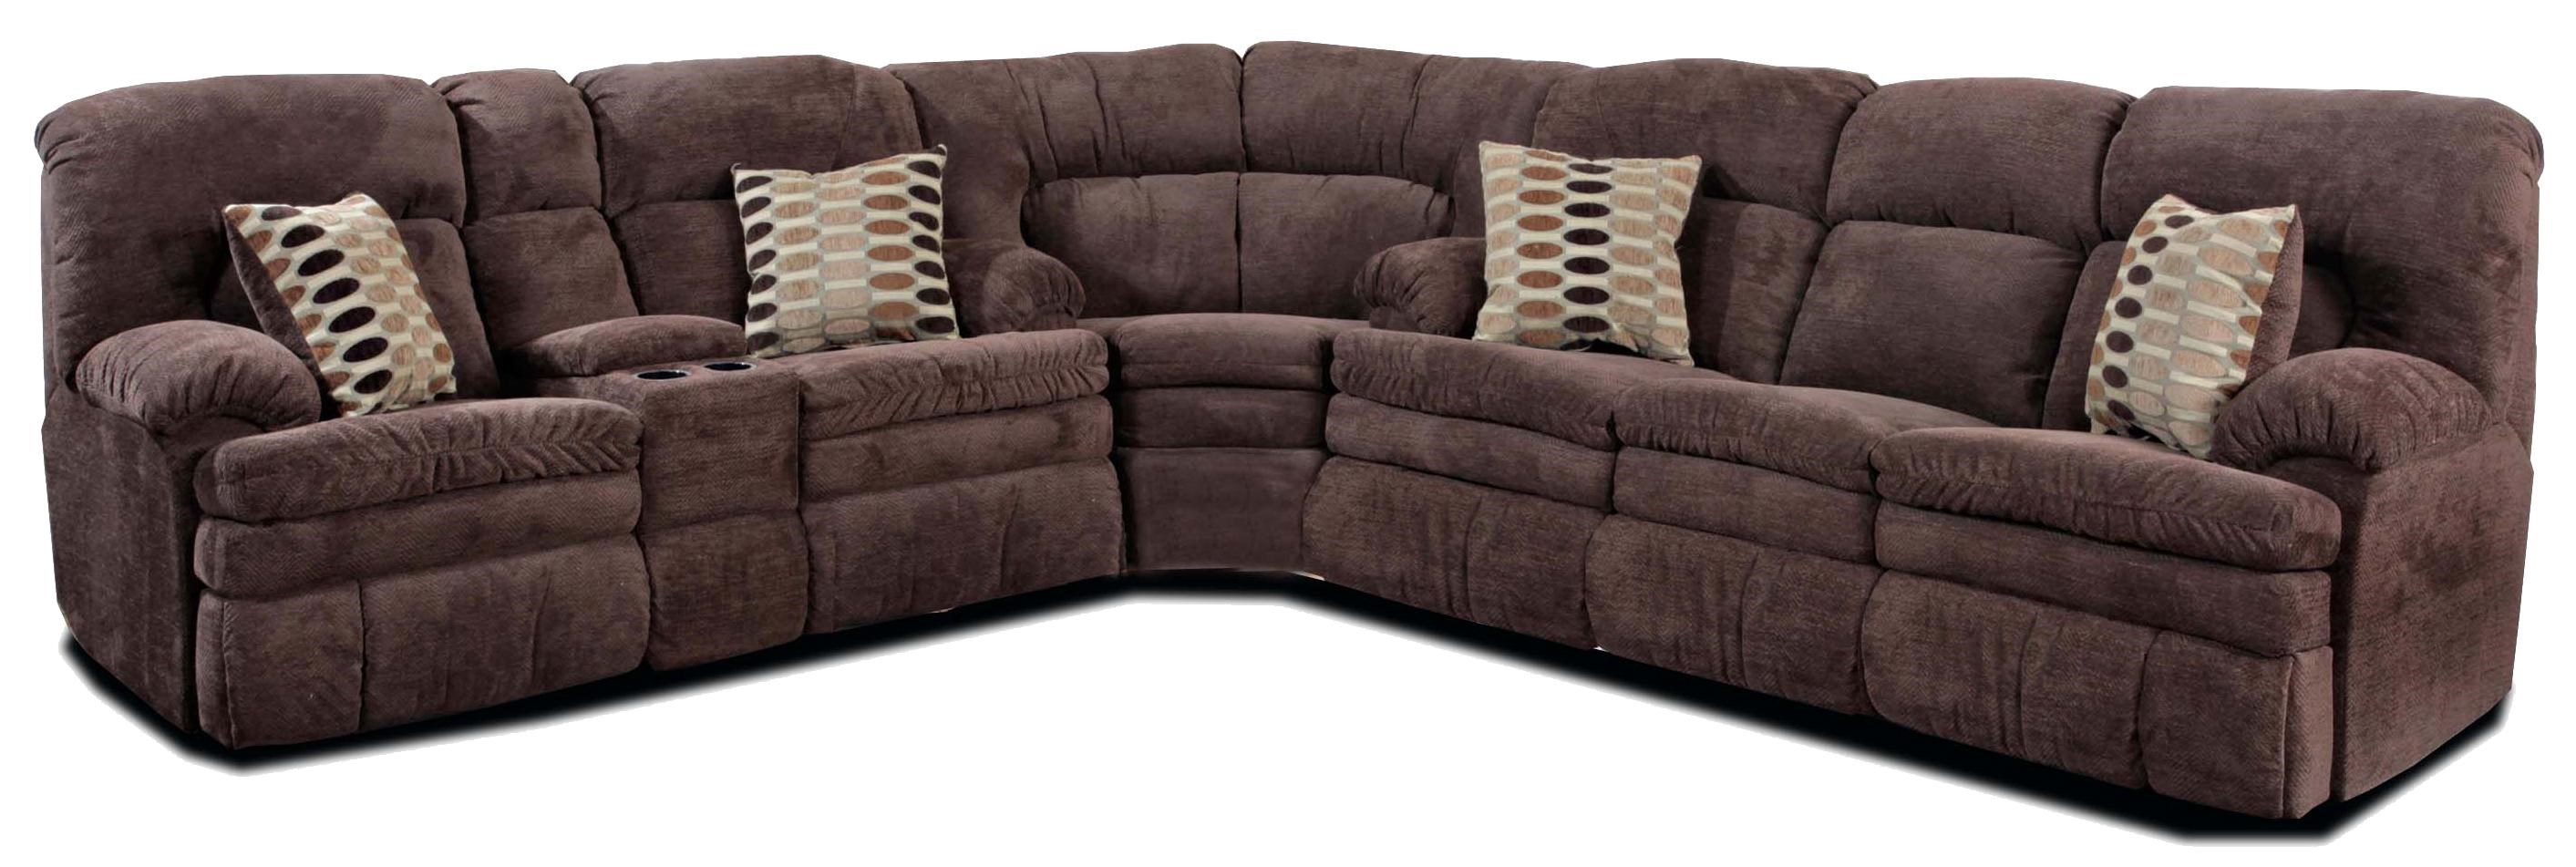 HomeStretch 103 Chocolate Series Reclining Corner Sectional Sofa with Left Side Cup-Holder Console for Family Rooms - Royal Furniture - Reclining Sectional ...  sc 1 st  Royal Furniture : corner sectional sofa - Sectionals, Sofas & Couches